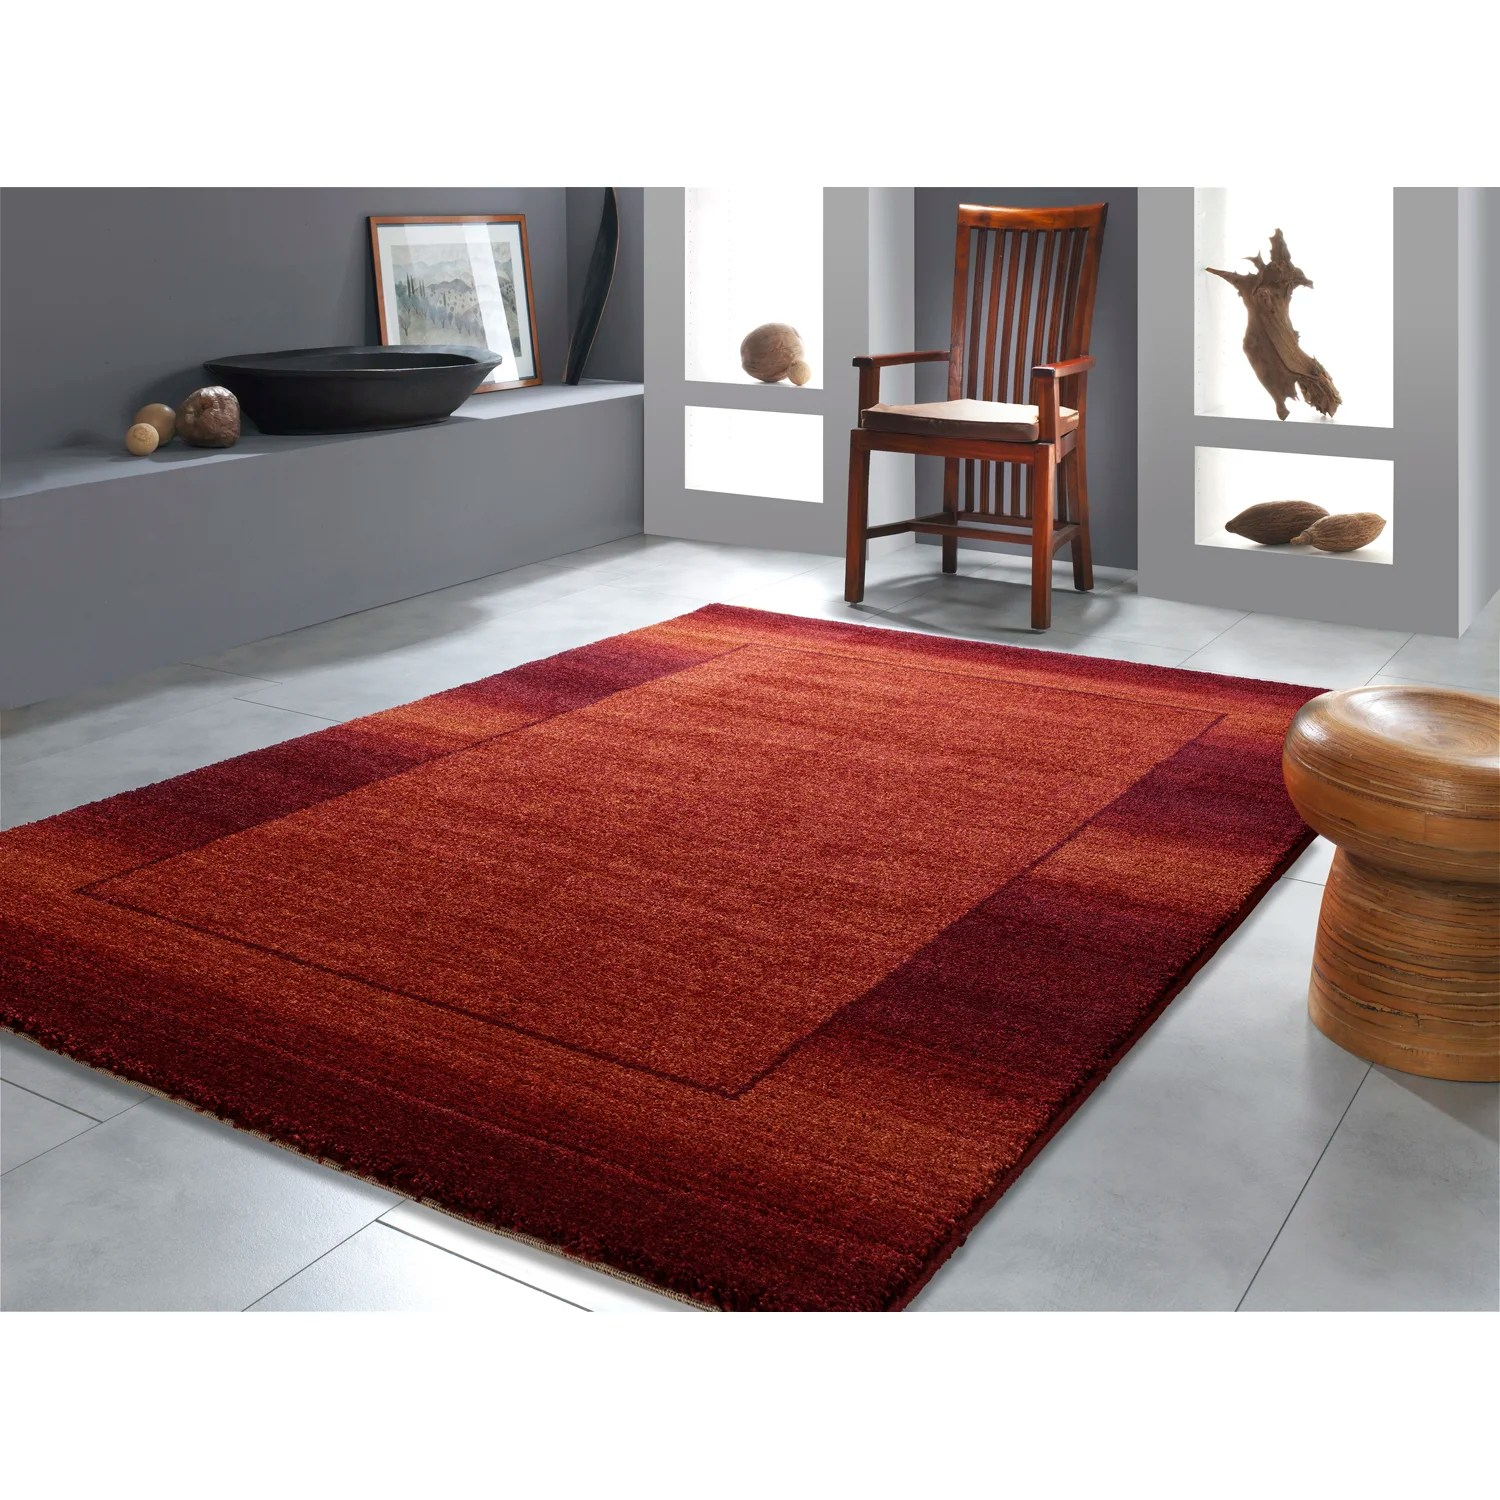 Kuhfell Teppich Rot Teppich In Rot Designer Teppich Muster Karo Creme Rot